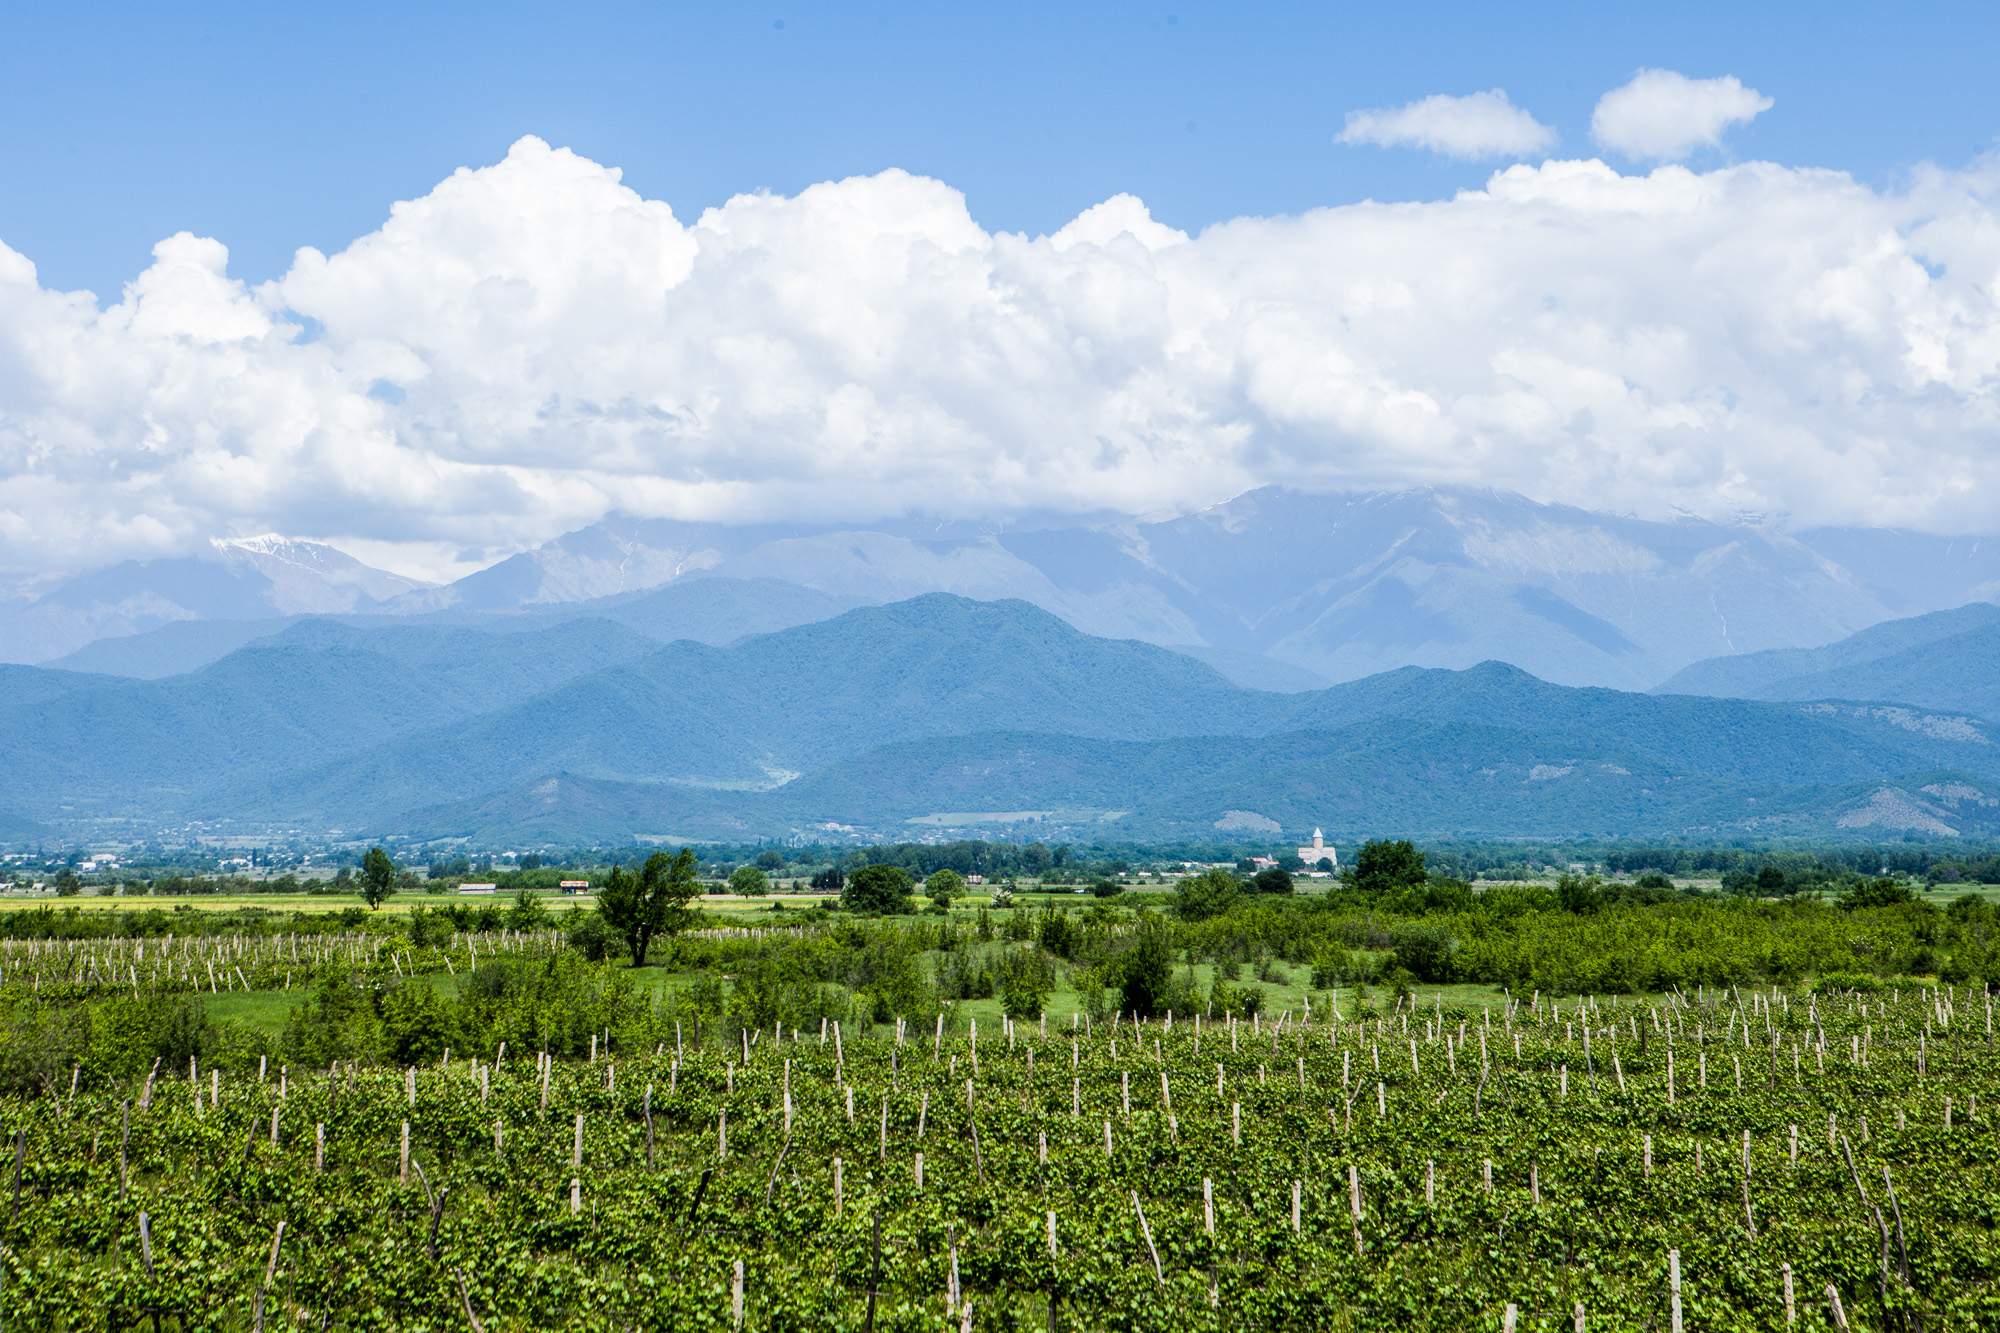 Kakheti Vineyards